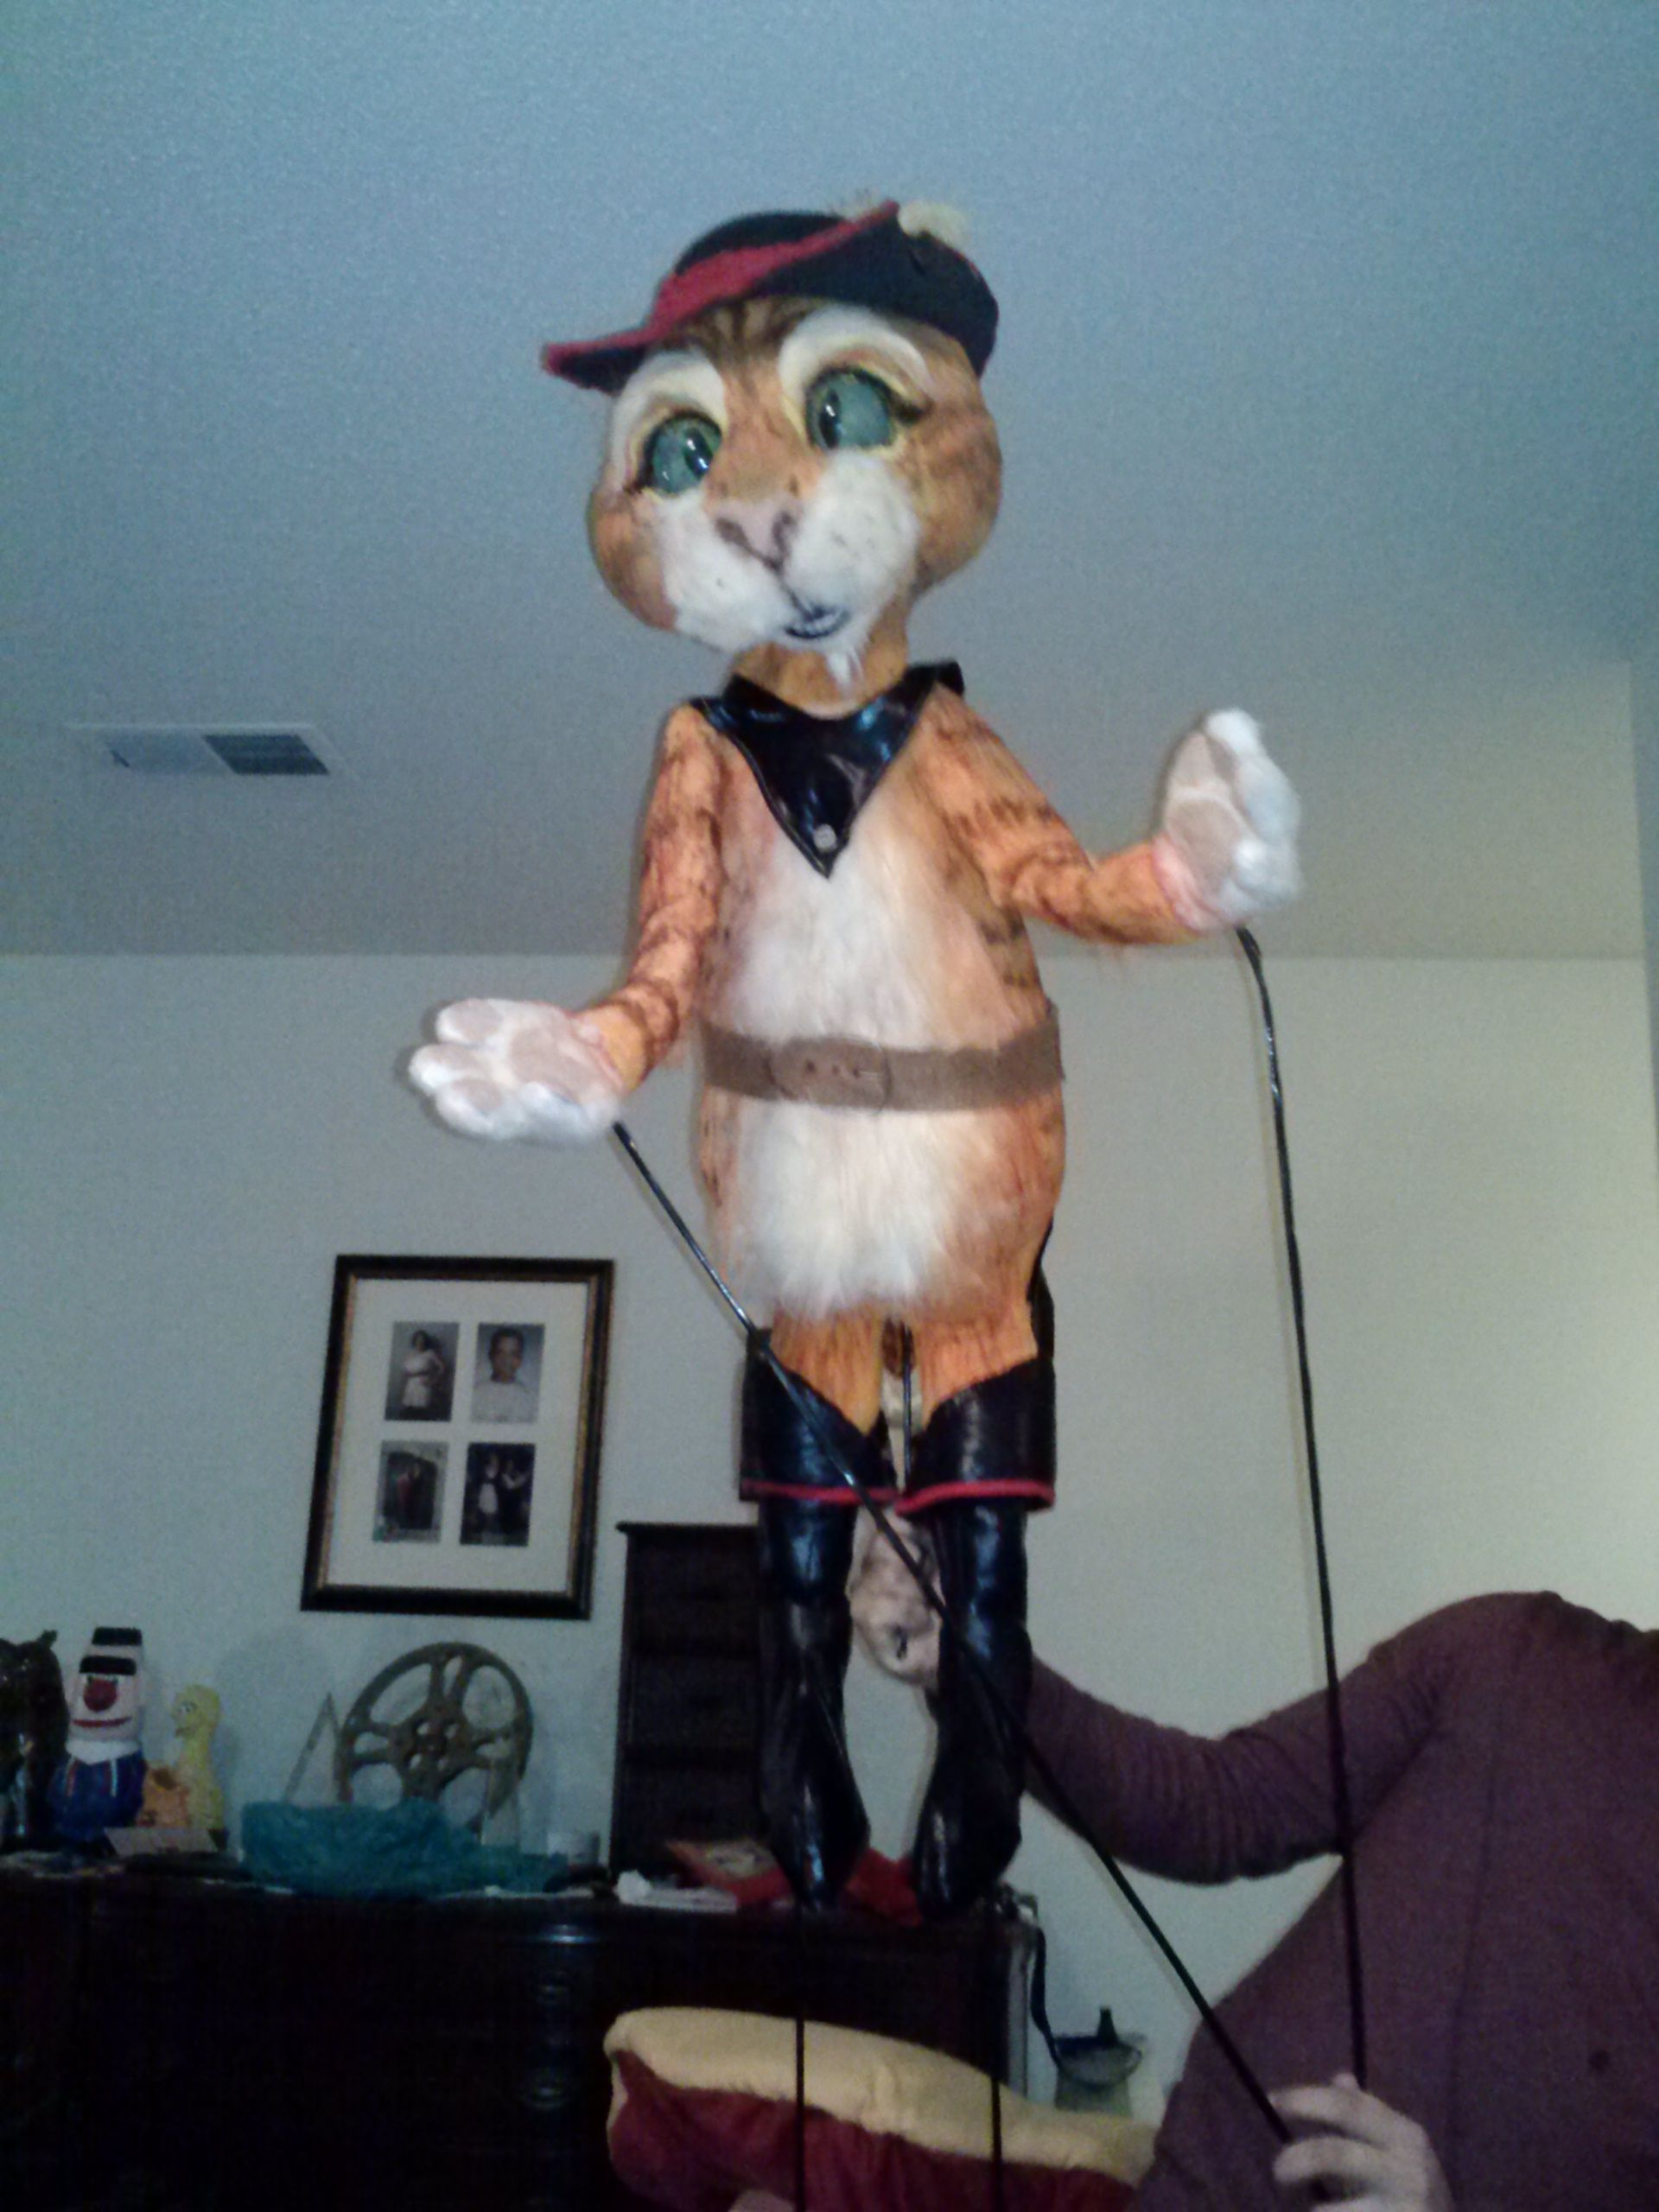 Puss in Boots for Shrek the Musical. The full puppet set is